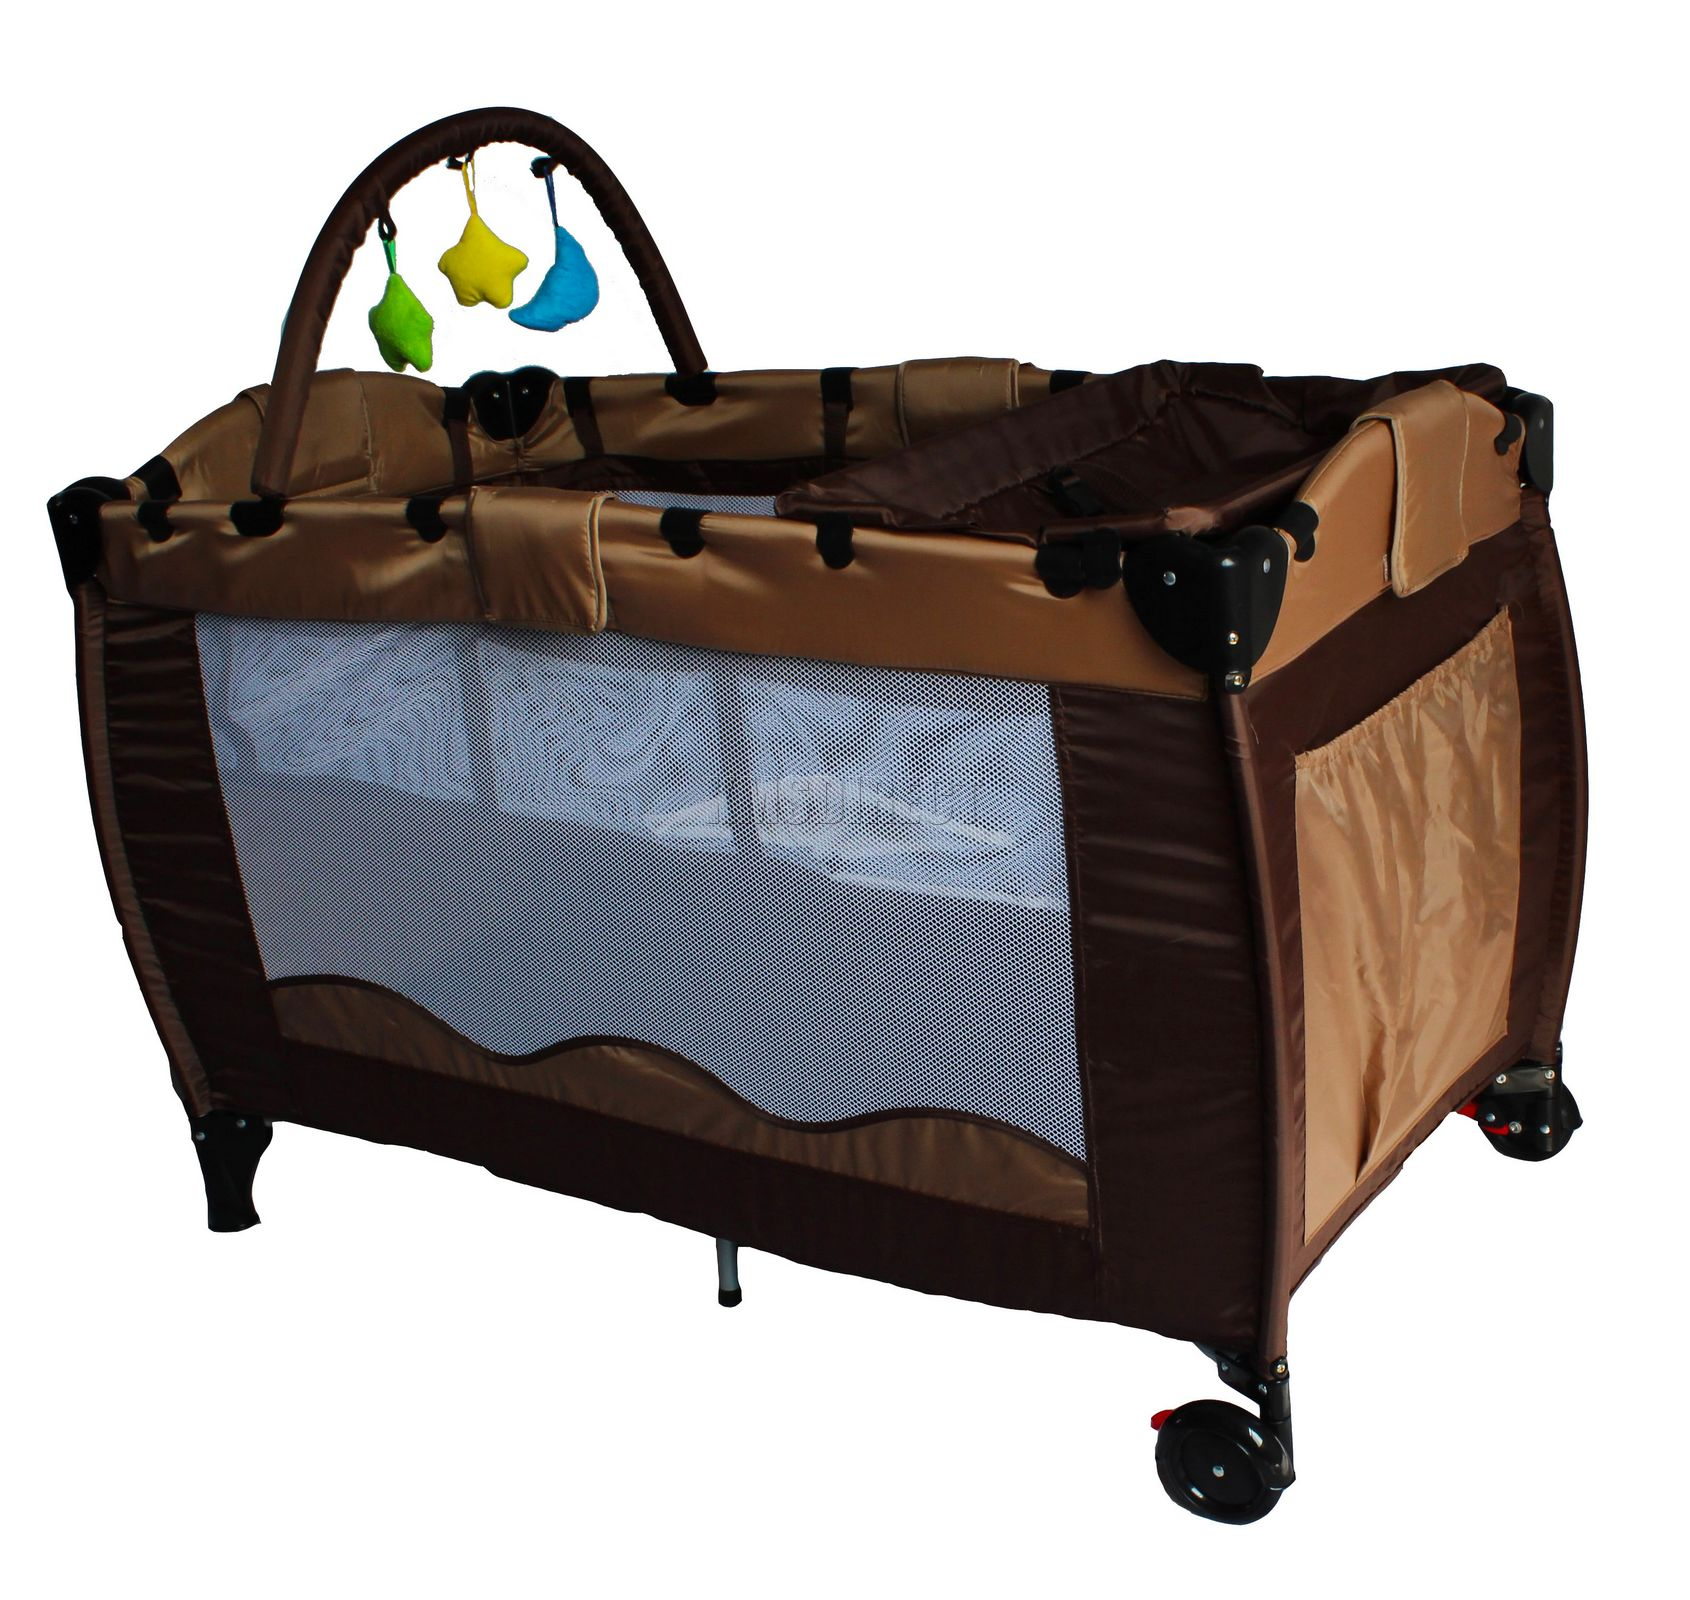 Portable Child Baby Travel Cot Bed Bassinet Playpen Play